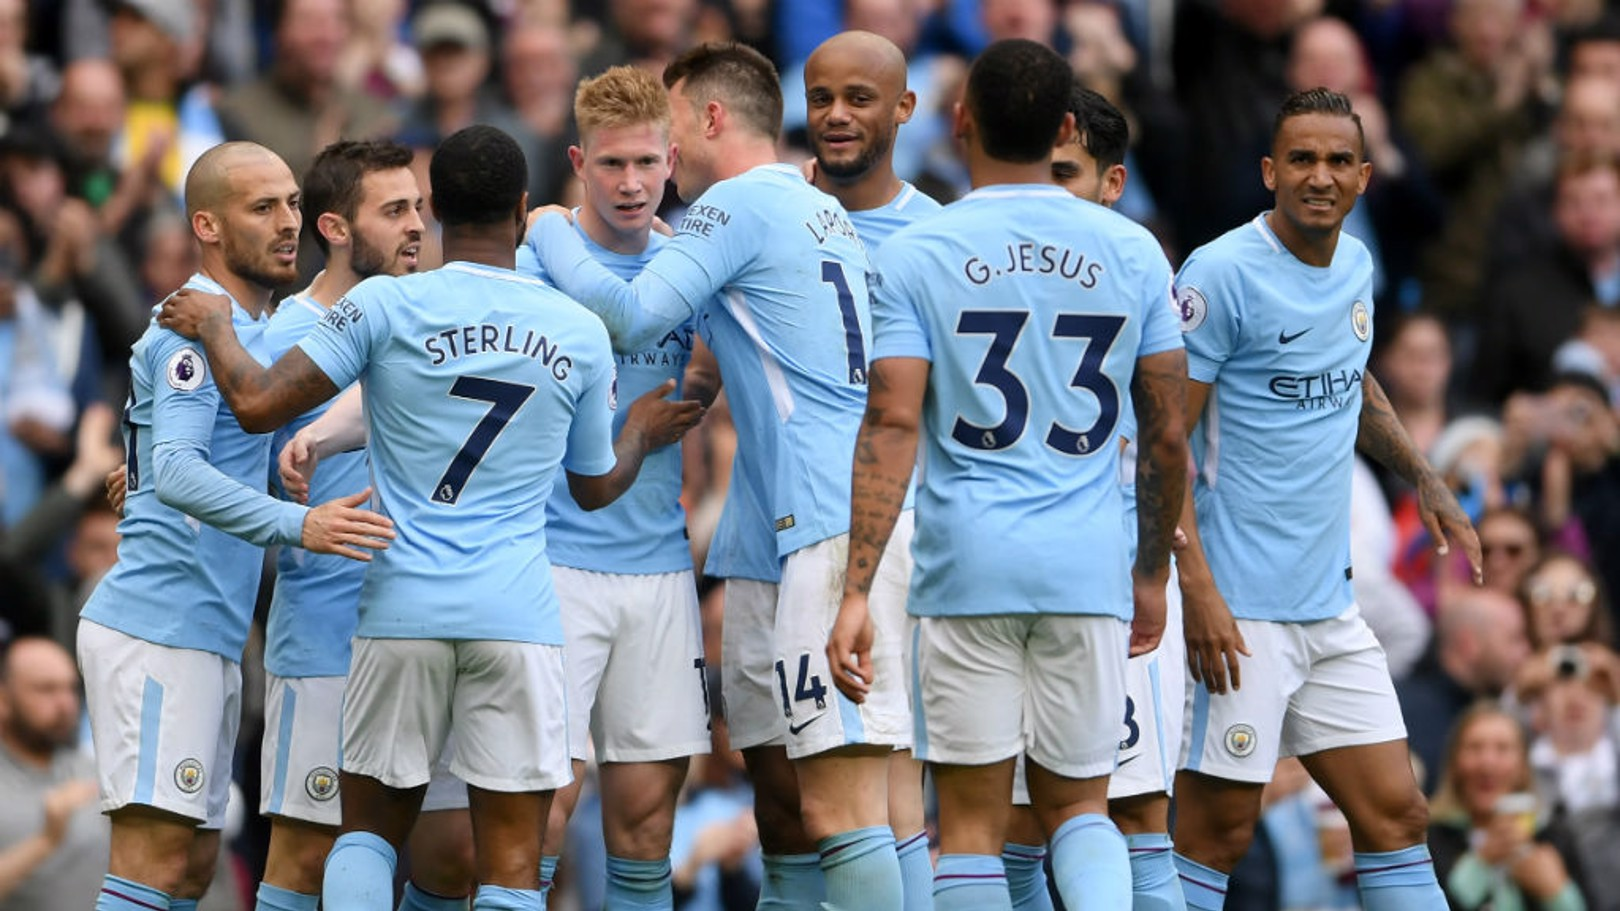 NUMBERS GAME: City's squad numbers have been submitted